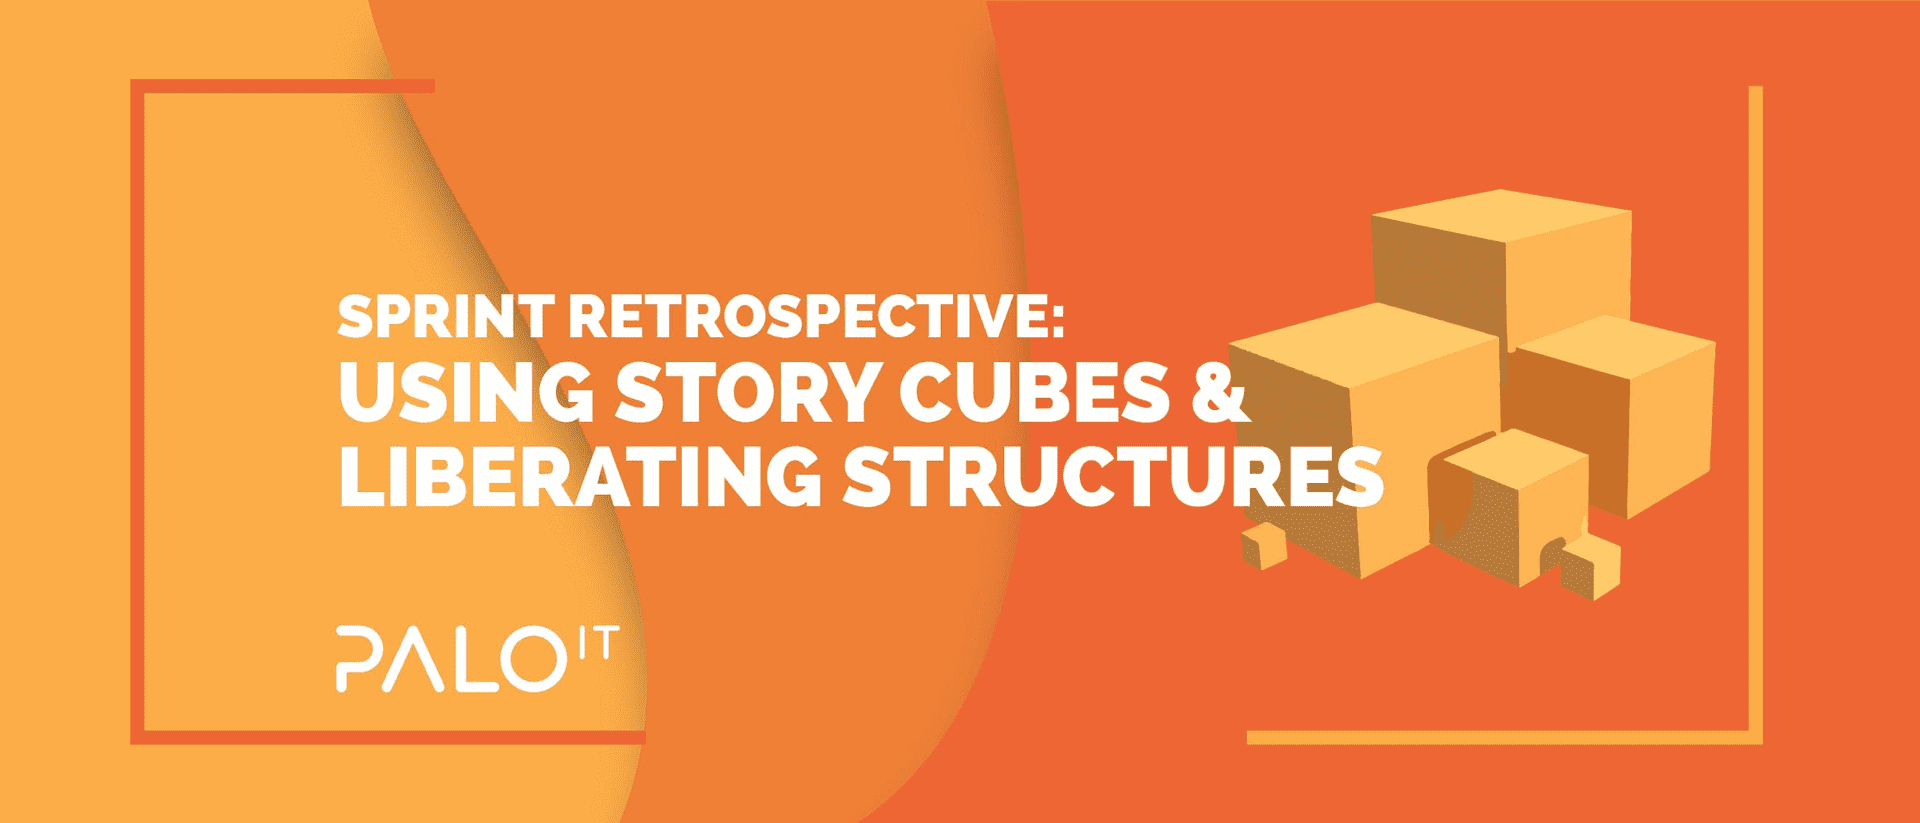 Sprint Retrospective: Using Story Cubes & Liberating Structures